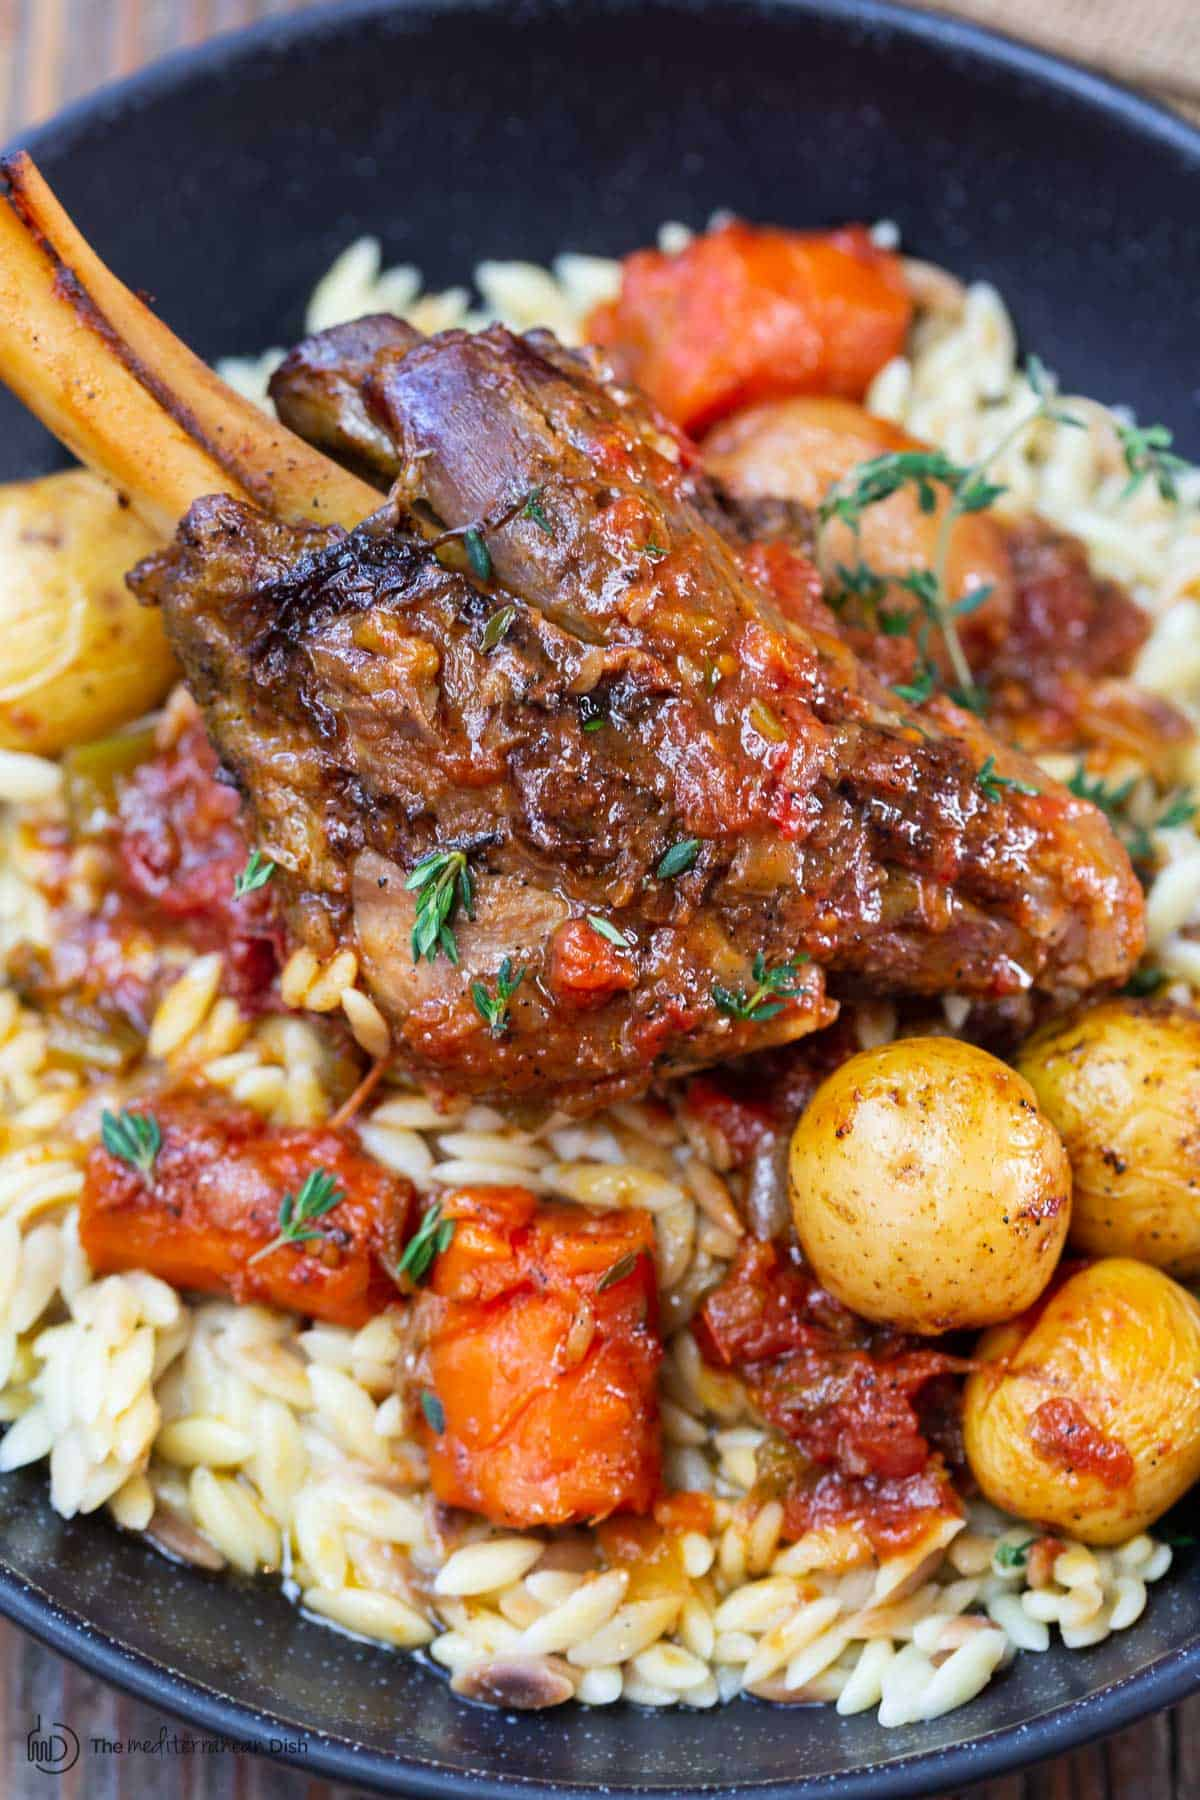 one lamb shank served with vegetables and orzo